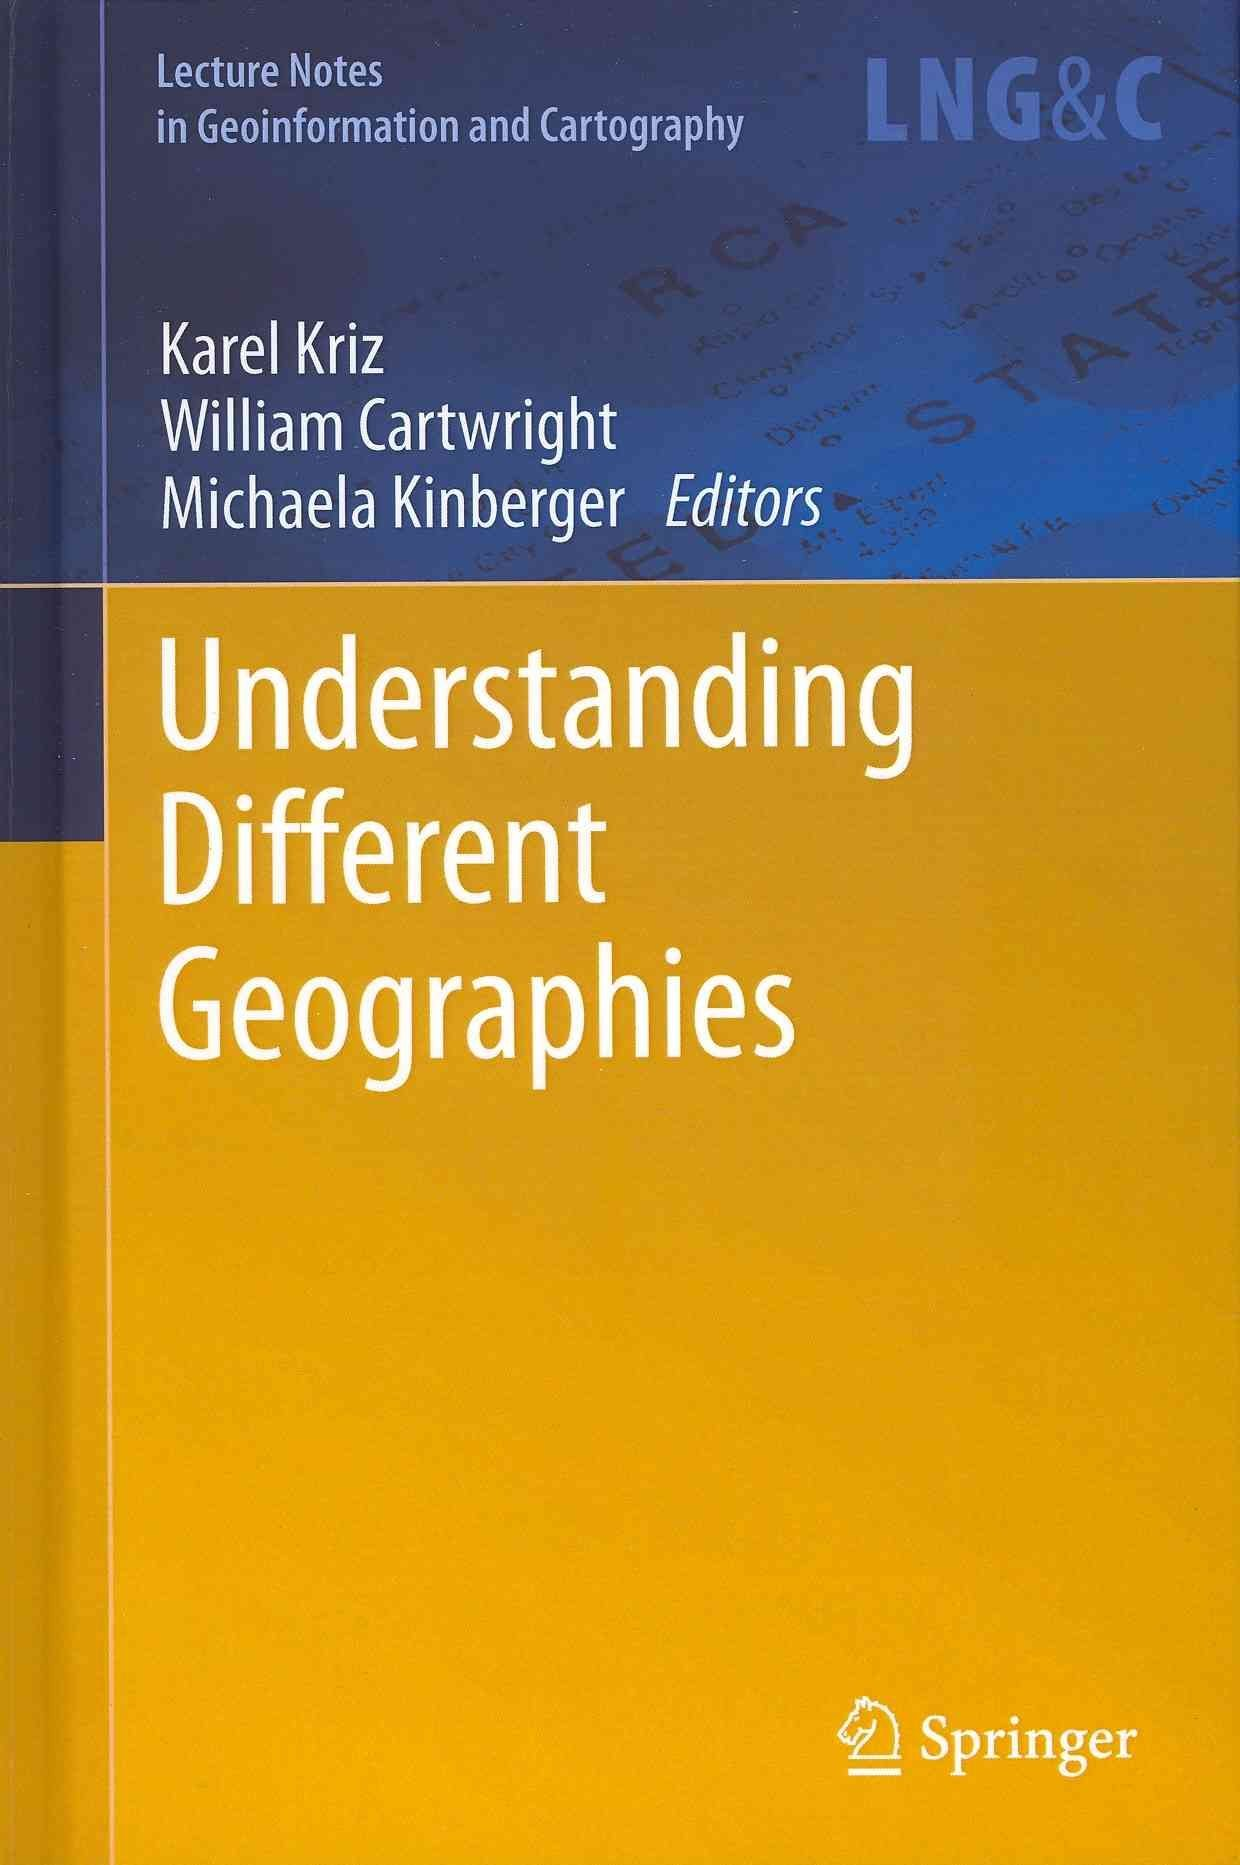 Understanding Different Geographies - William Cartwright